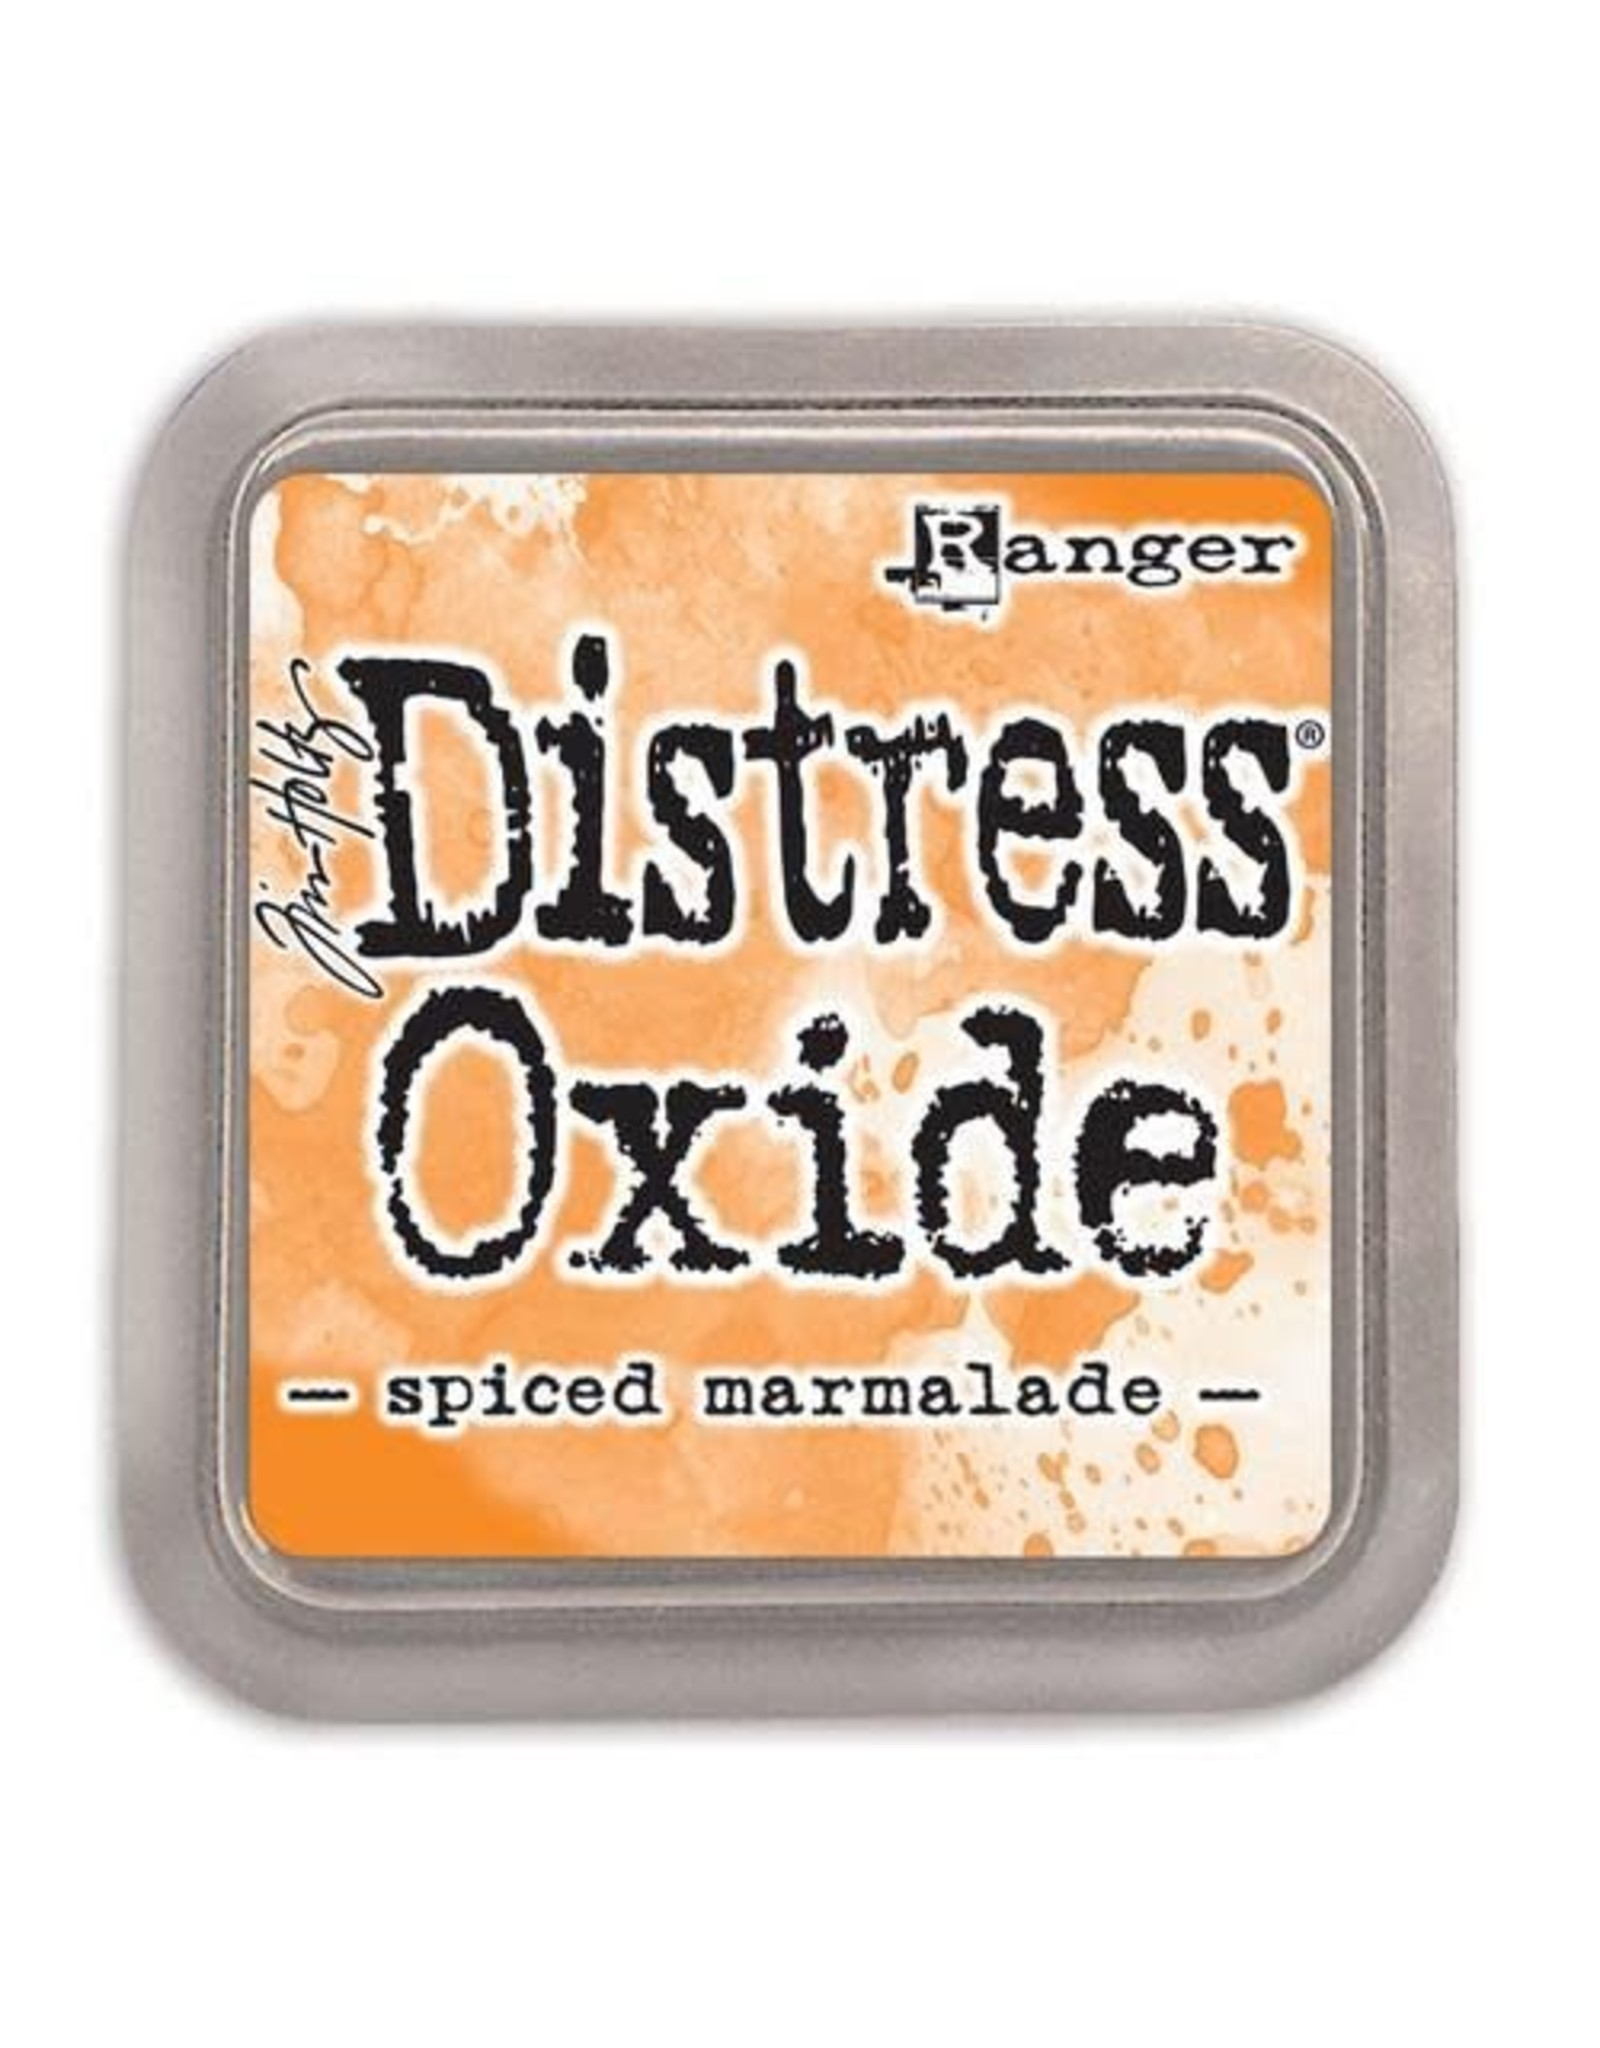 Ranger Distress Oxide Ranger Distress Oxide - spiced marmalade